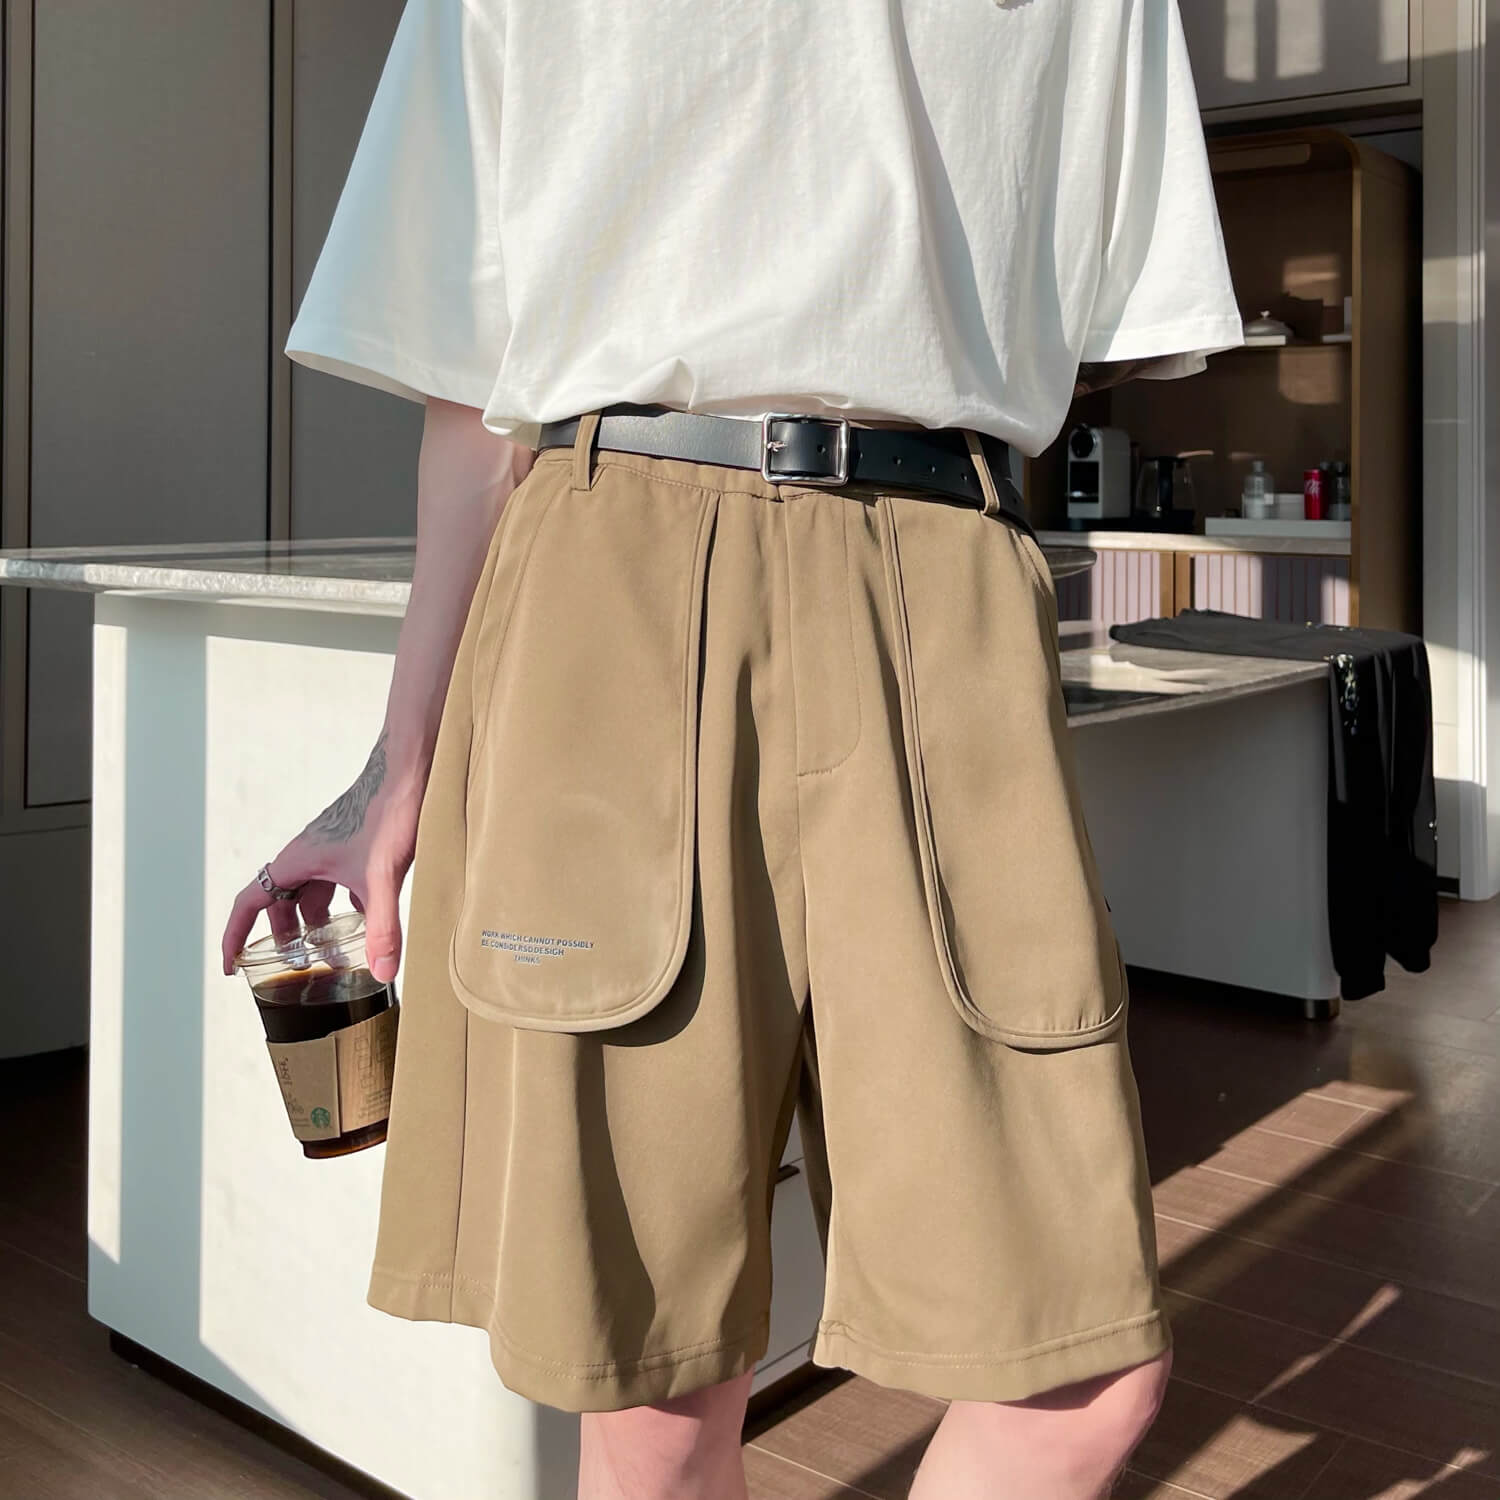 Шорты Cui Layout Studio Cloth Shorts Oversized Rounded Pockets (1)